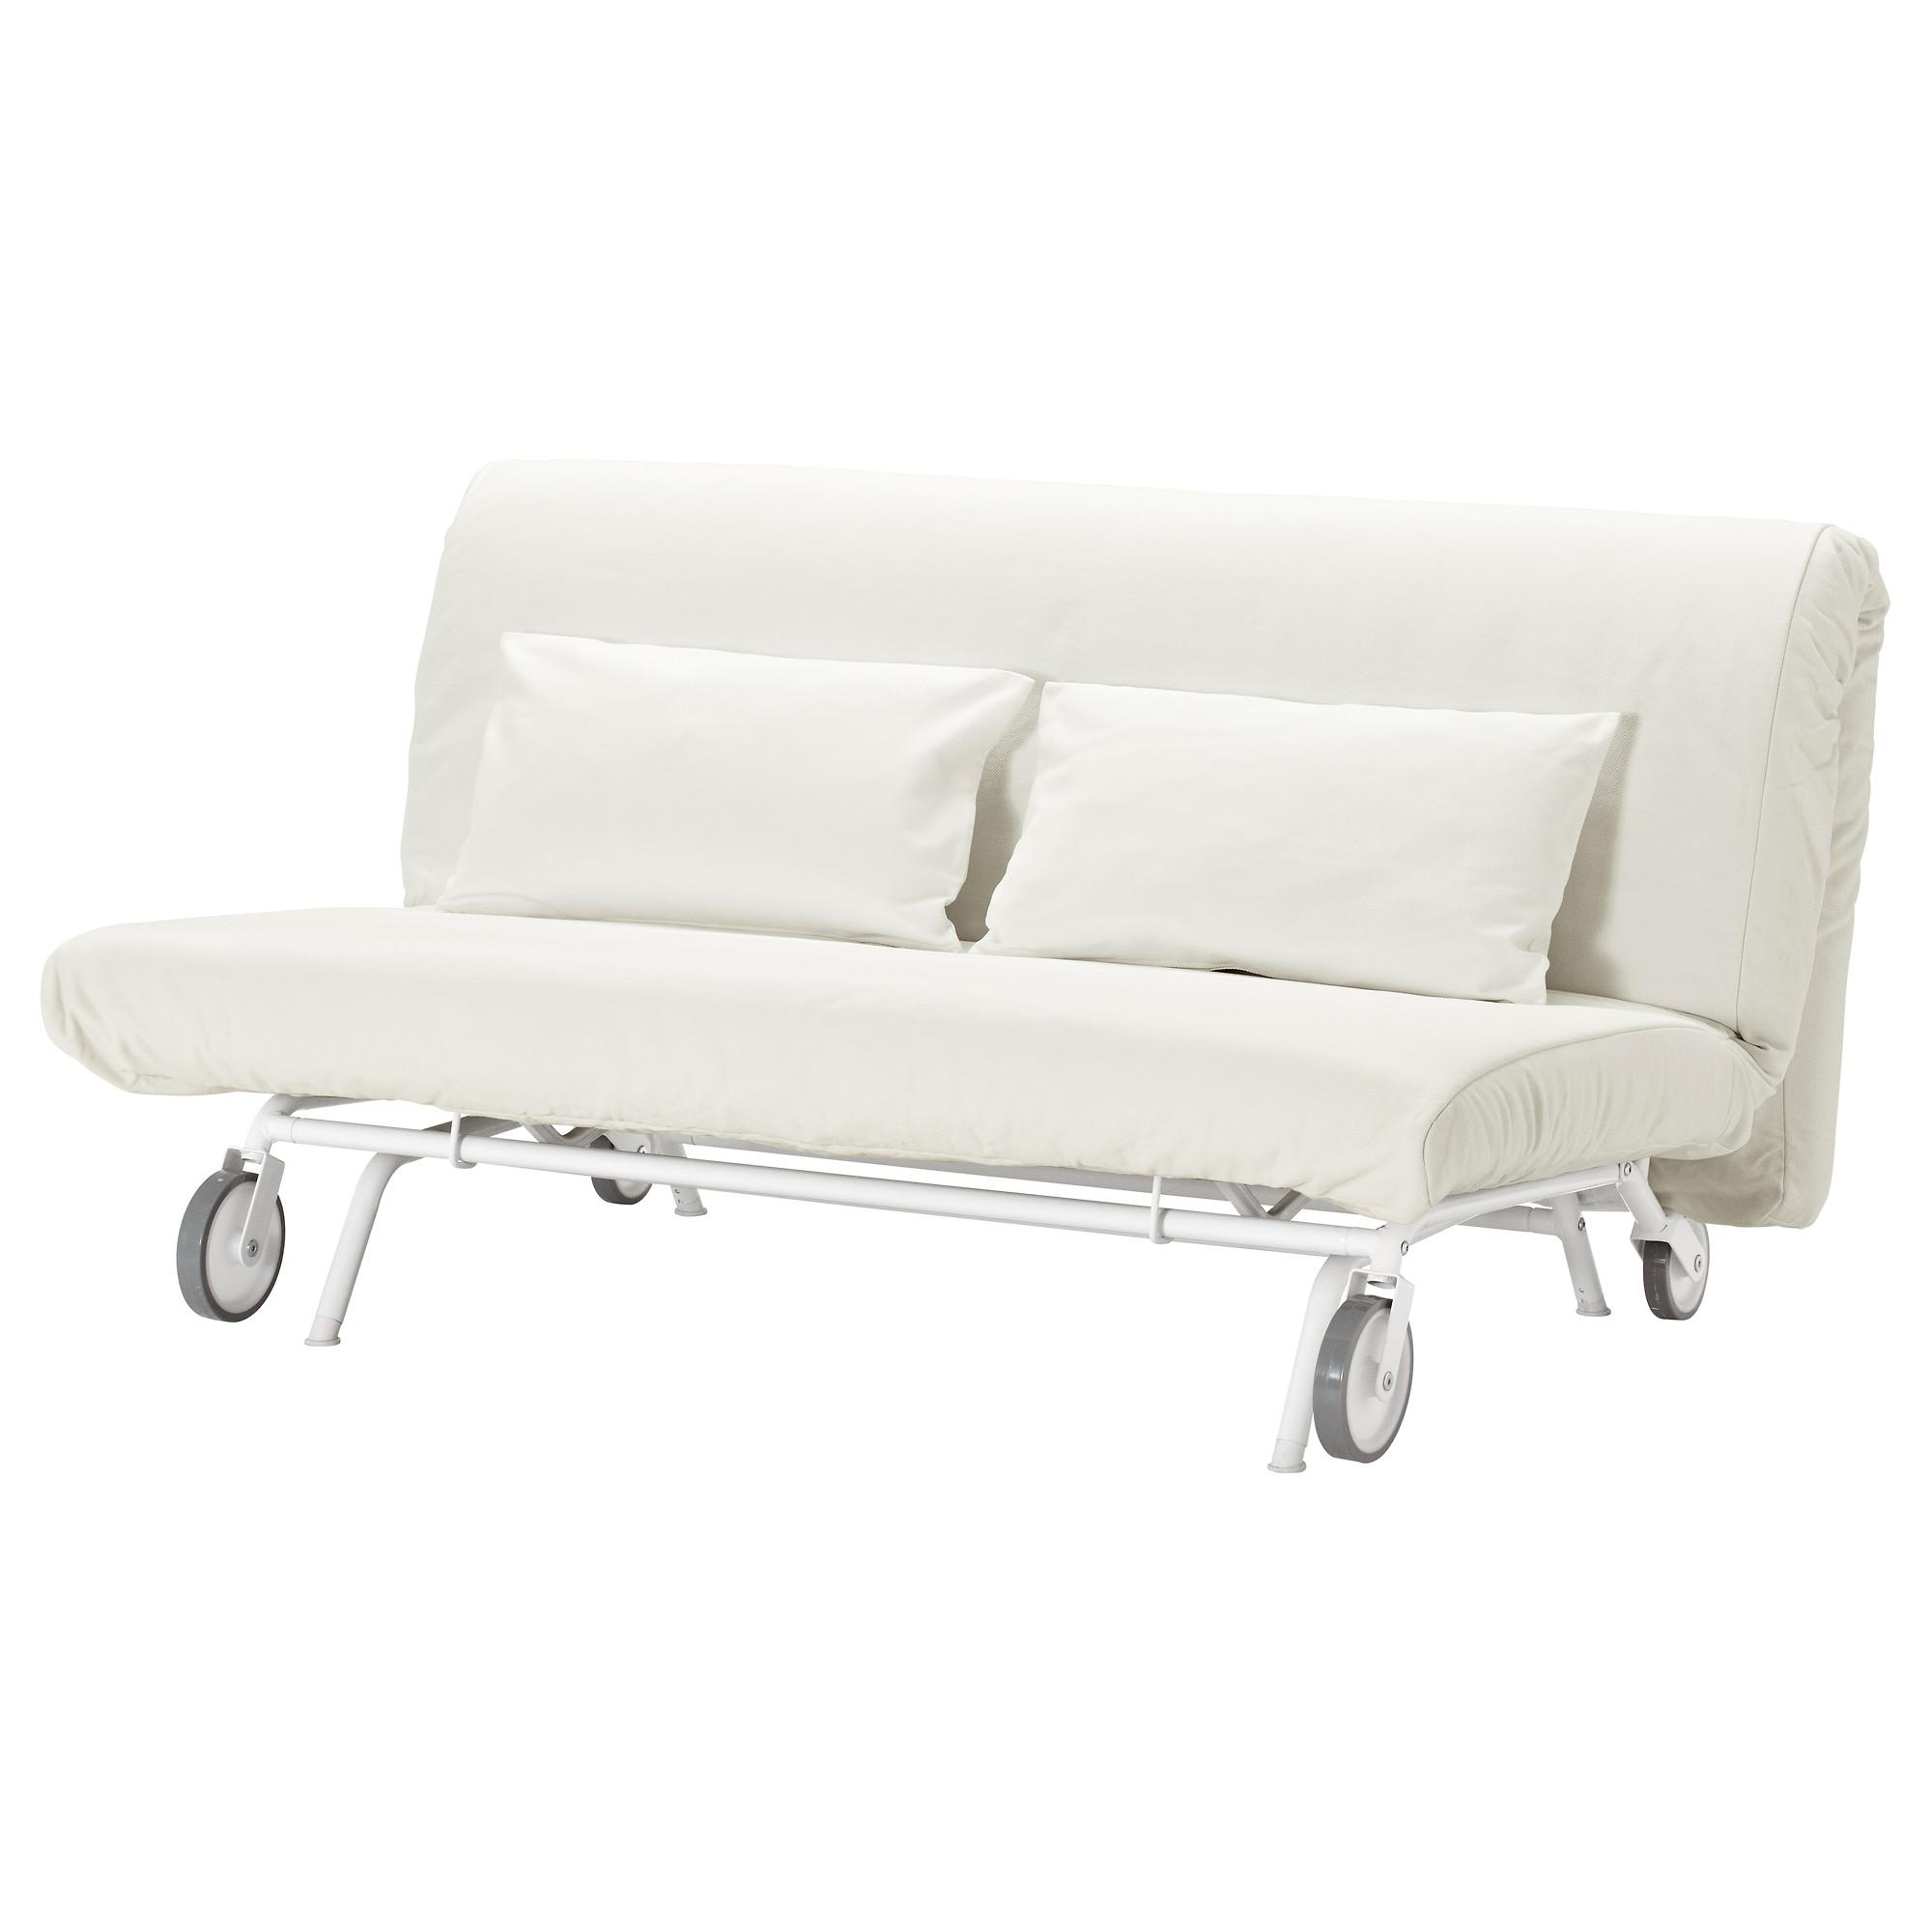 Ikea Ps Håvet Two Seat Sofa Bed Gräsbo White – Ikea Intended For Sofa Chairs Ikea (View 18 of 20)